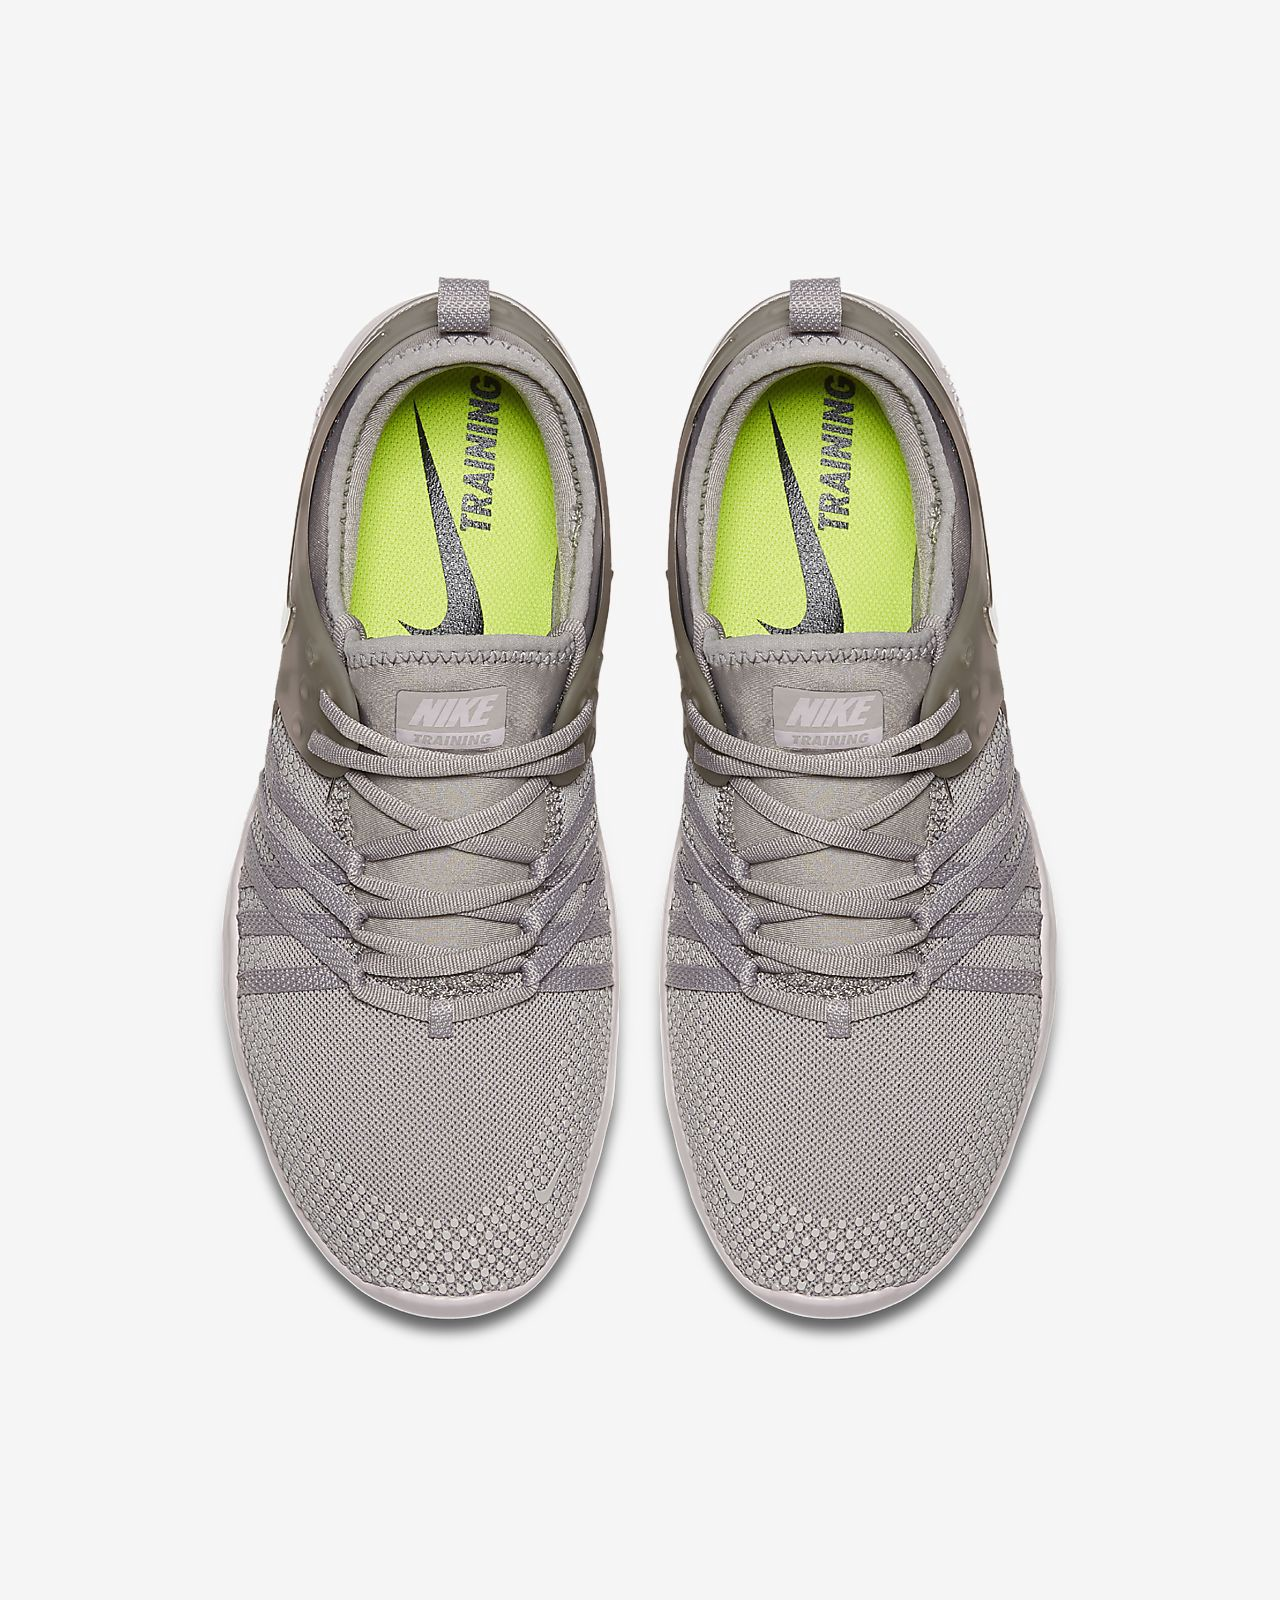 0e182d51d2498 Nike Free Trainer 7 Premium Women s Bodyweight Training